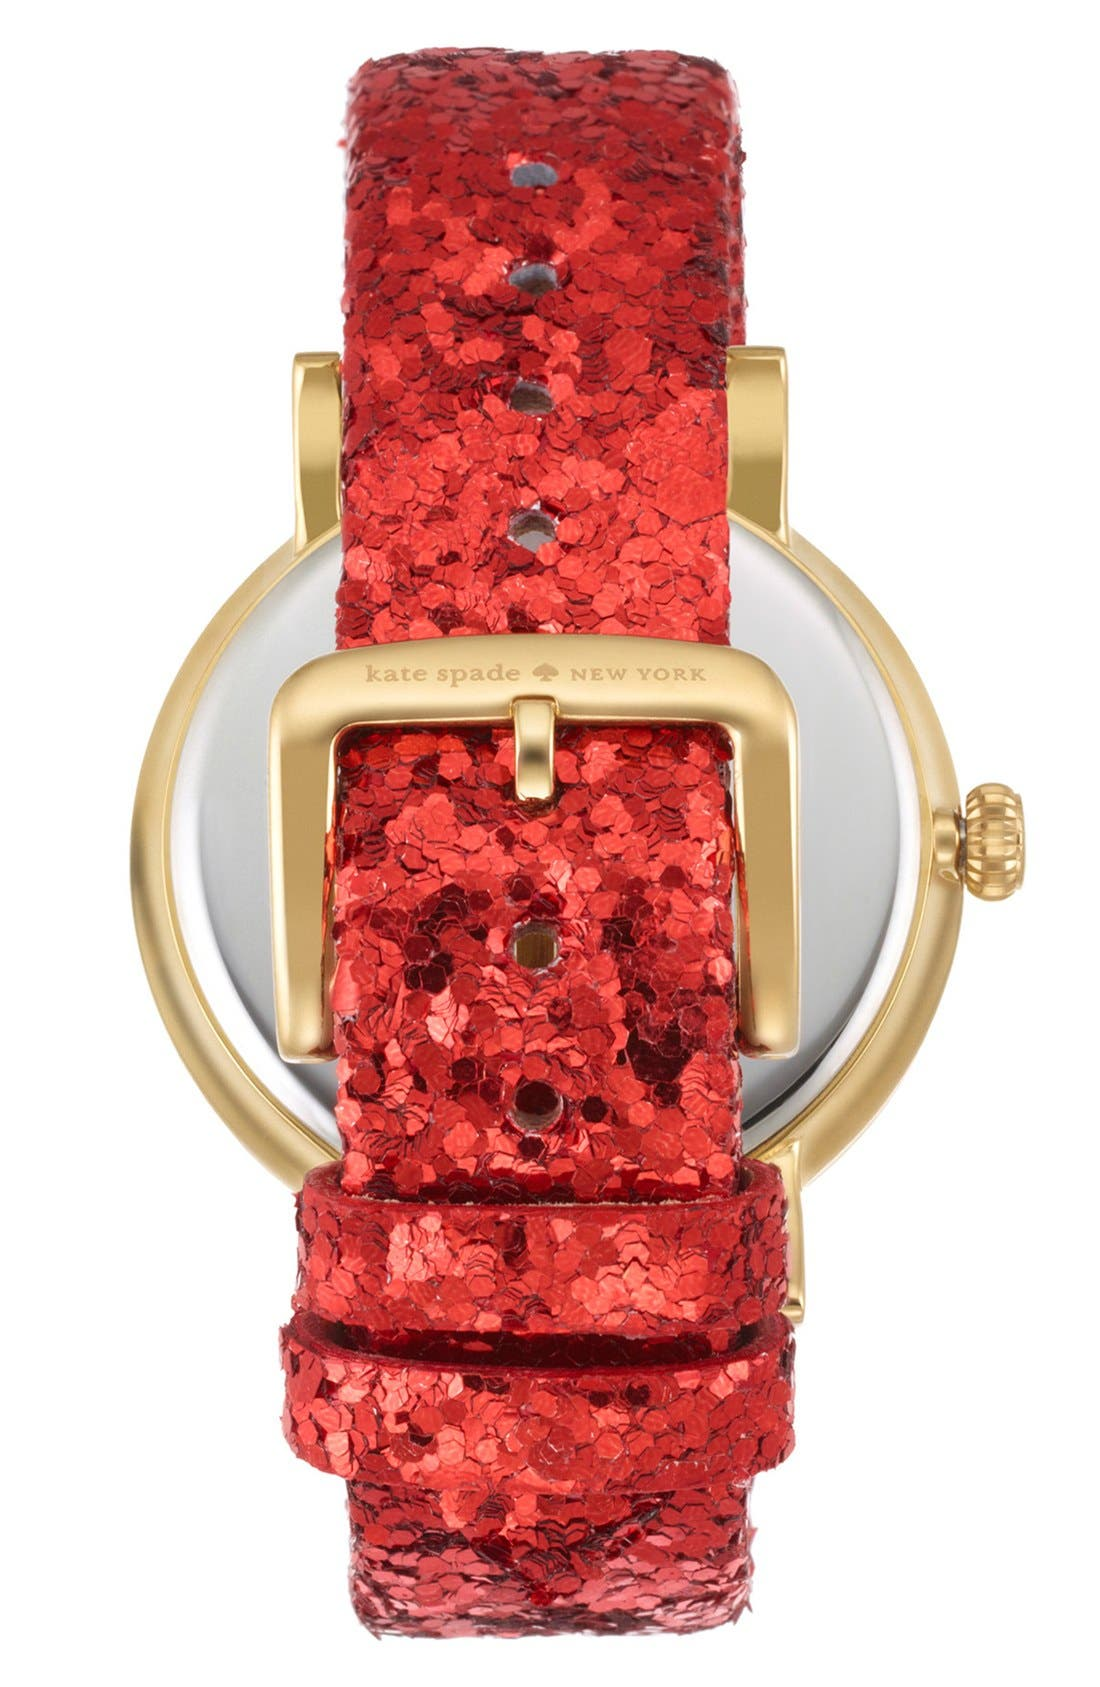 KATE SPADE NEW YORK,                             'metro' crystal bezel watch & straps set, 38mm,                             Alternate thumbnail 5, color,                             001